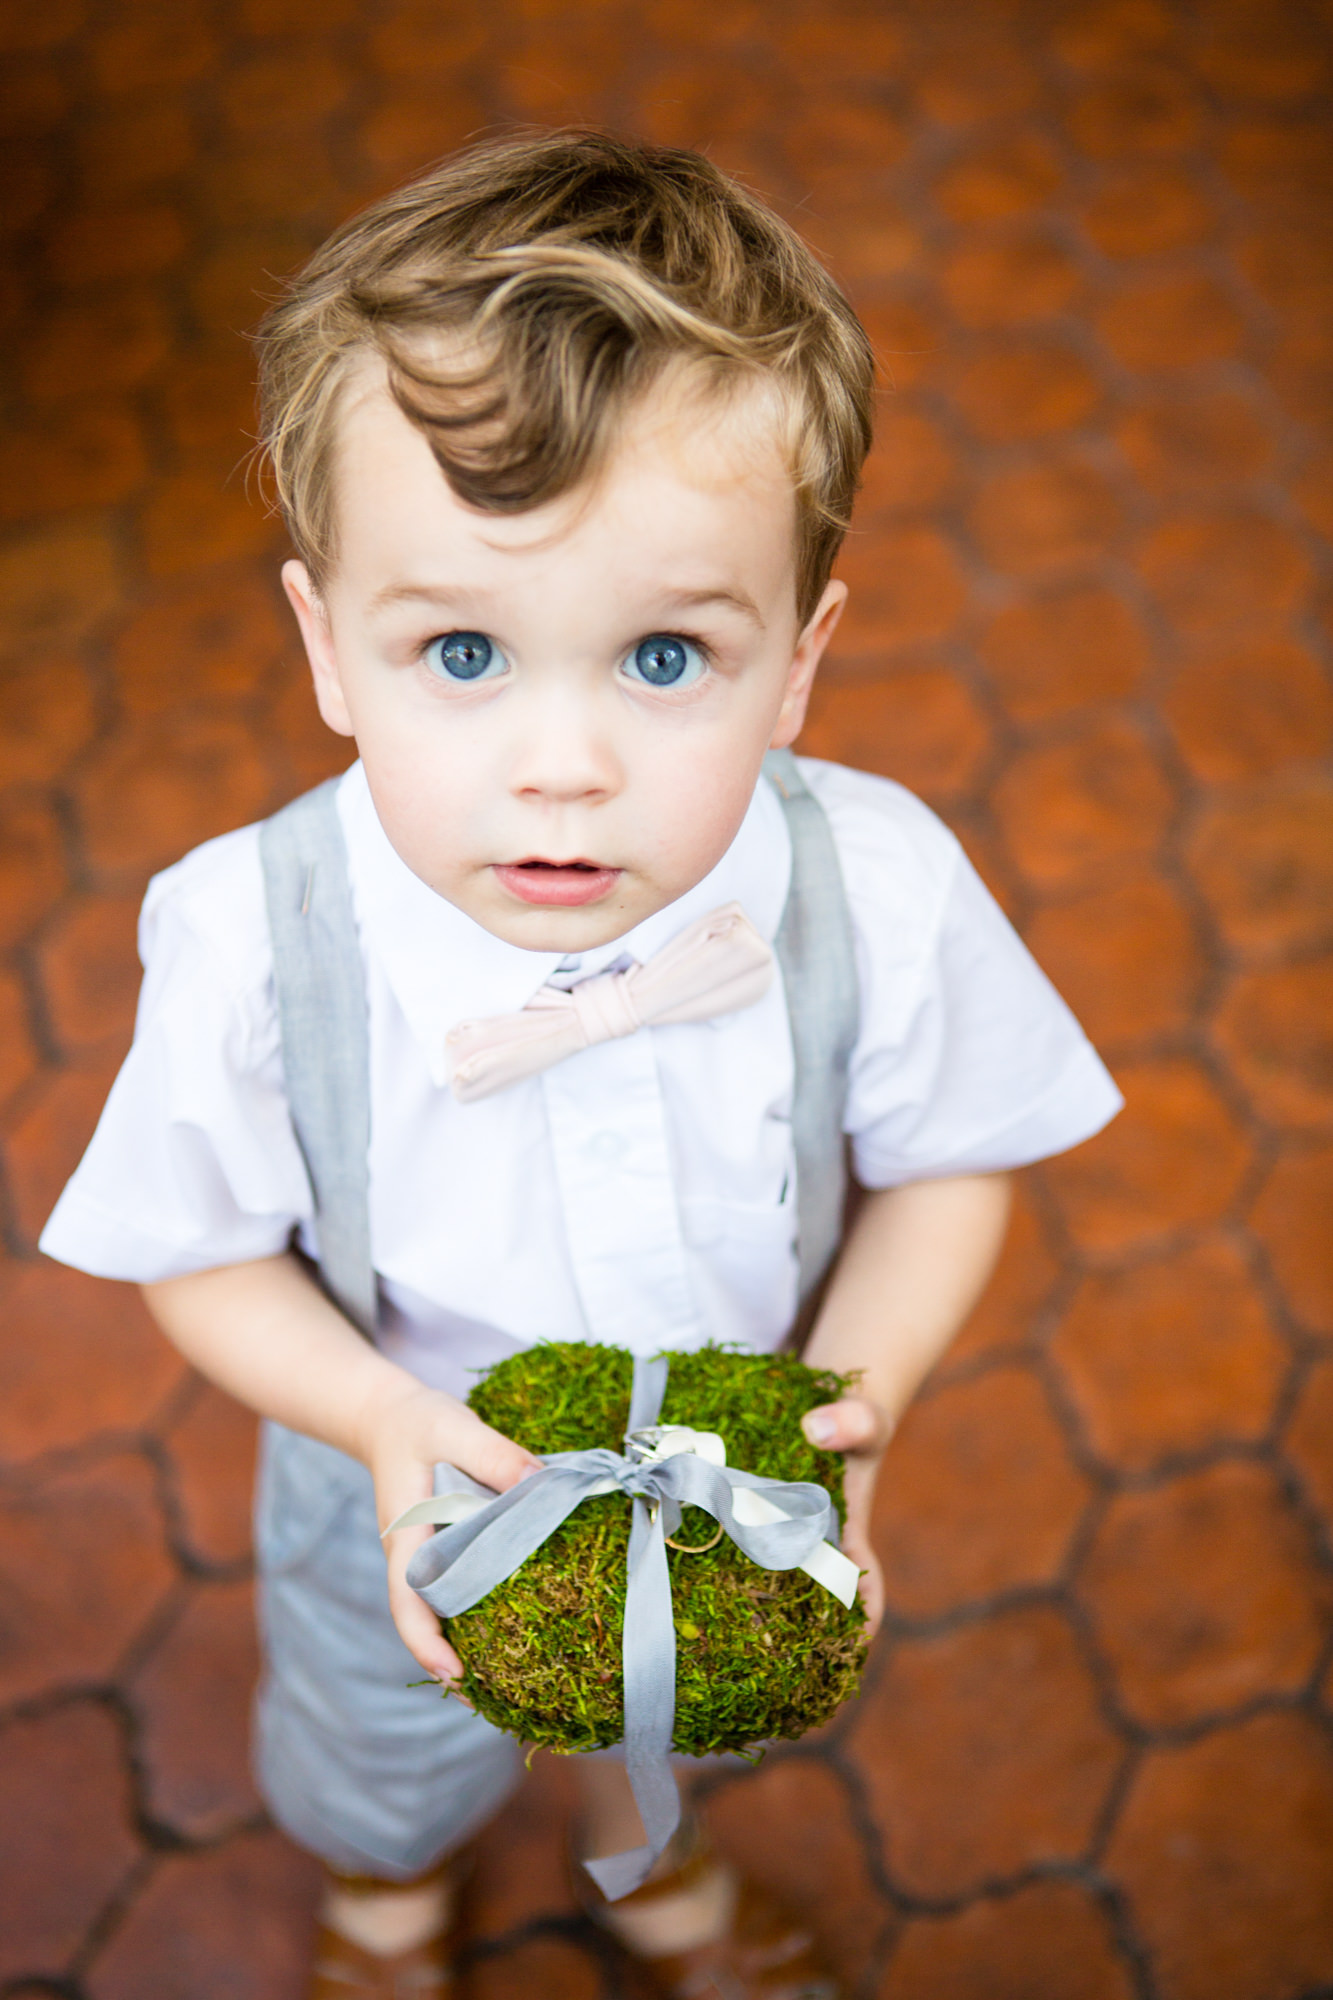 Ring bearer wearing shorts, suspenders, and pink bow tie - photo by La Vie Photo - San Juan Island